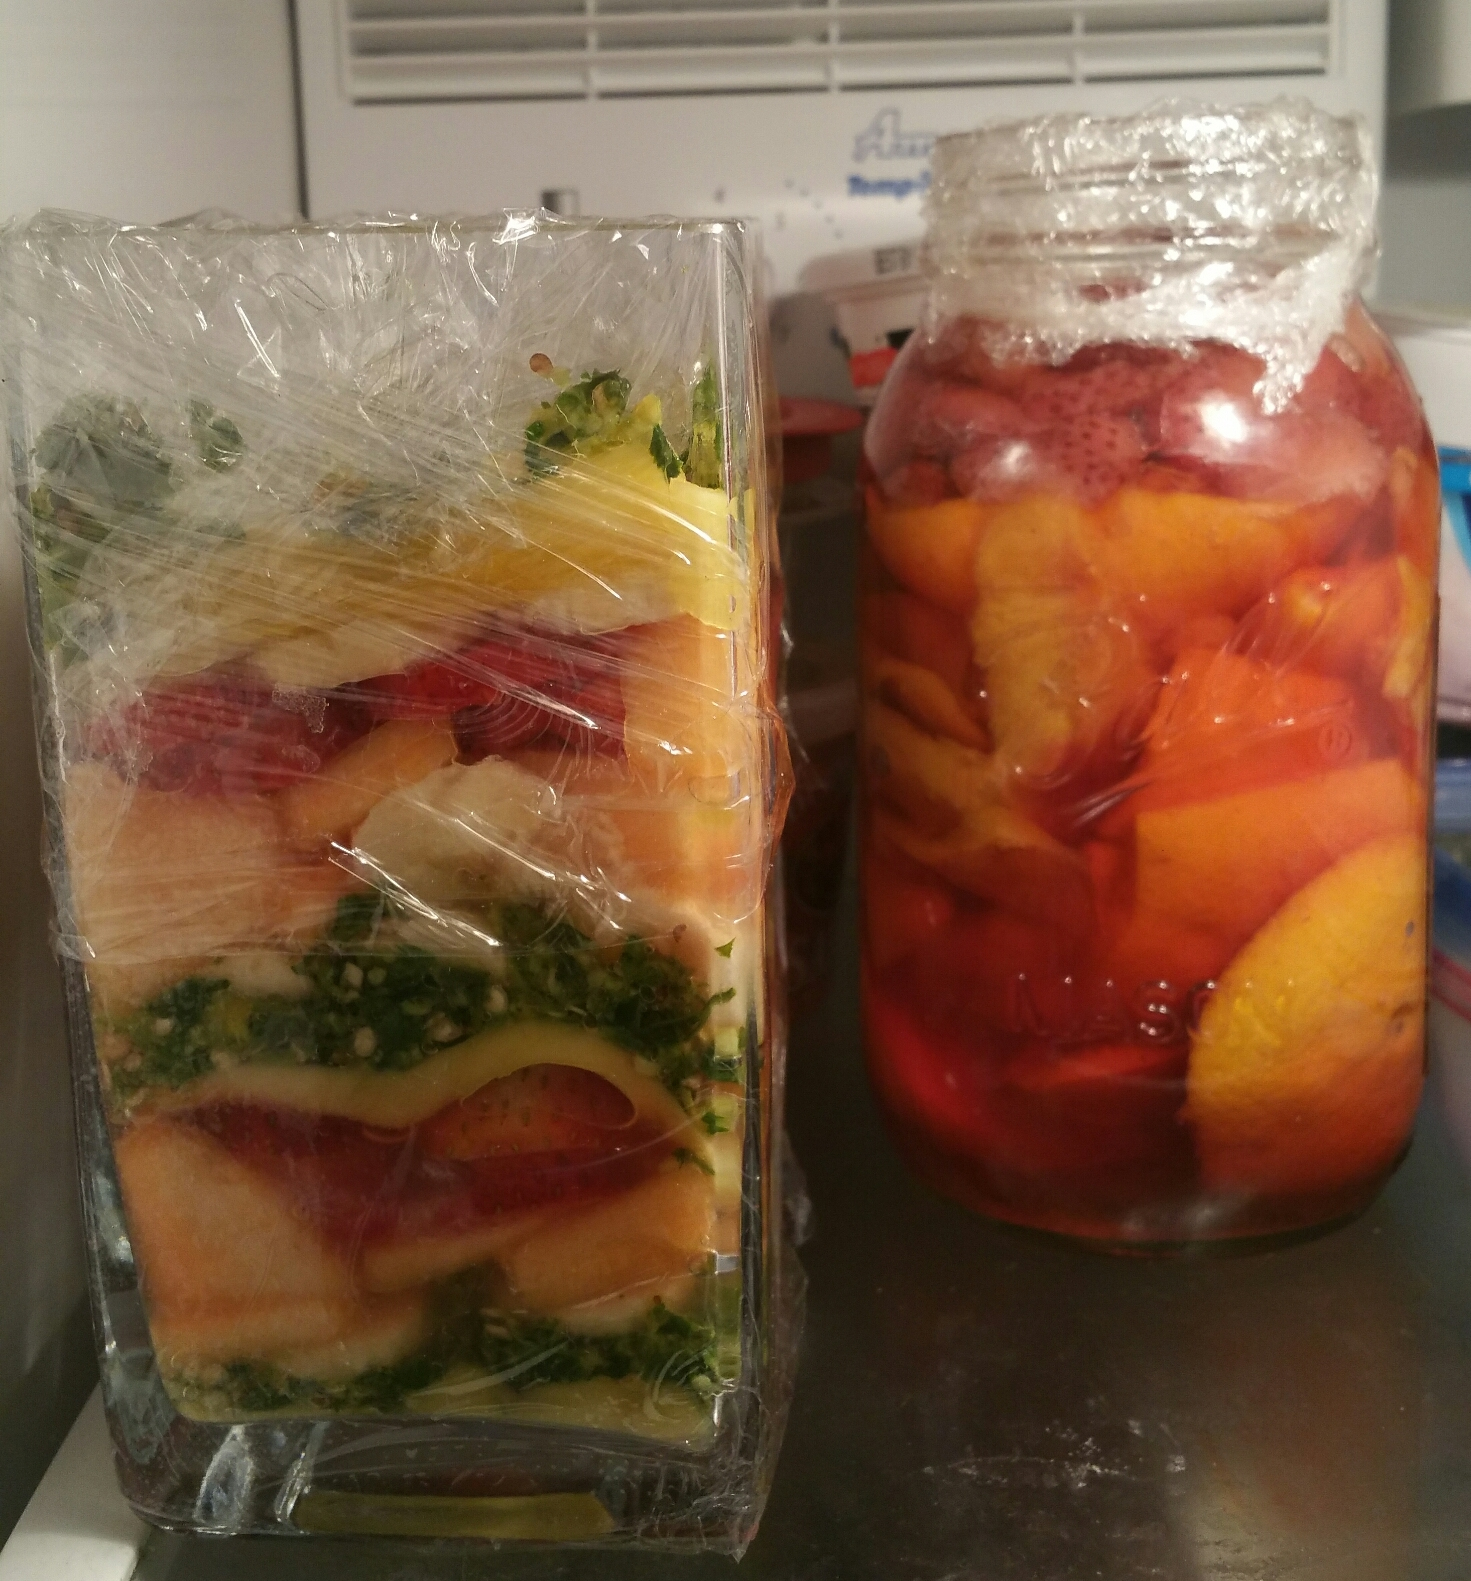 Spicy fruit salsas and simple syrup infusions. A #stir pod in #discovery phase.